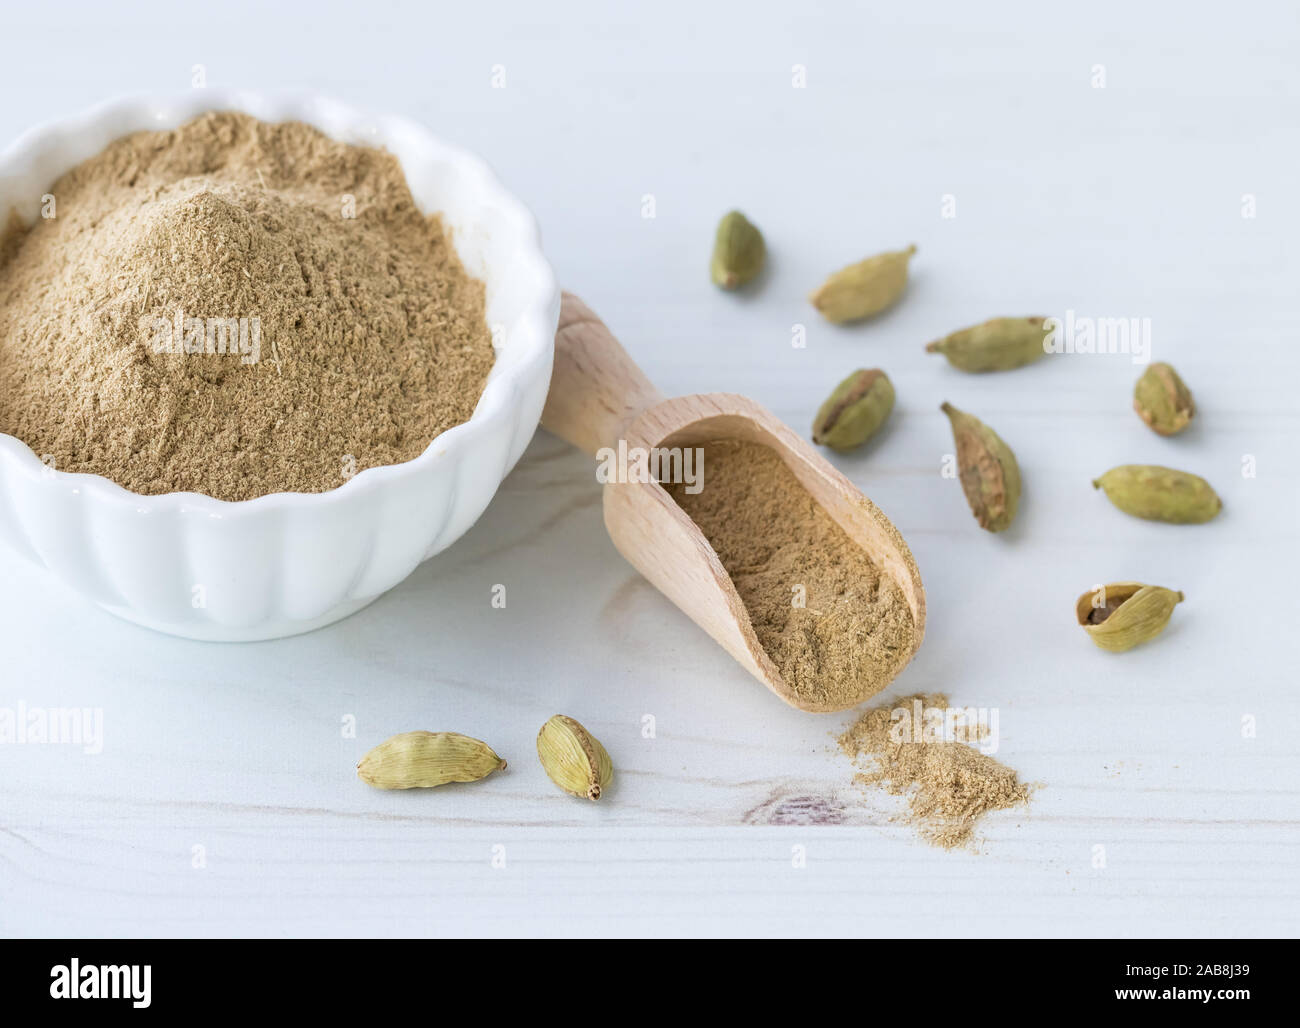 Ground Cardamom High Resolution Stock Photography And Images Alamy